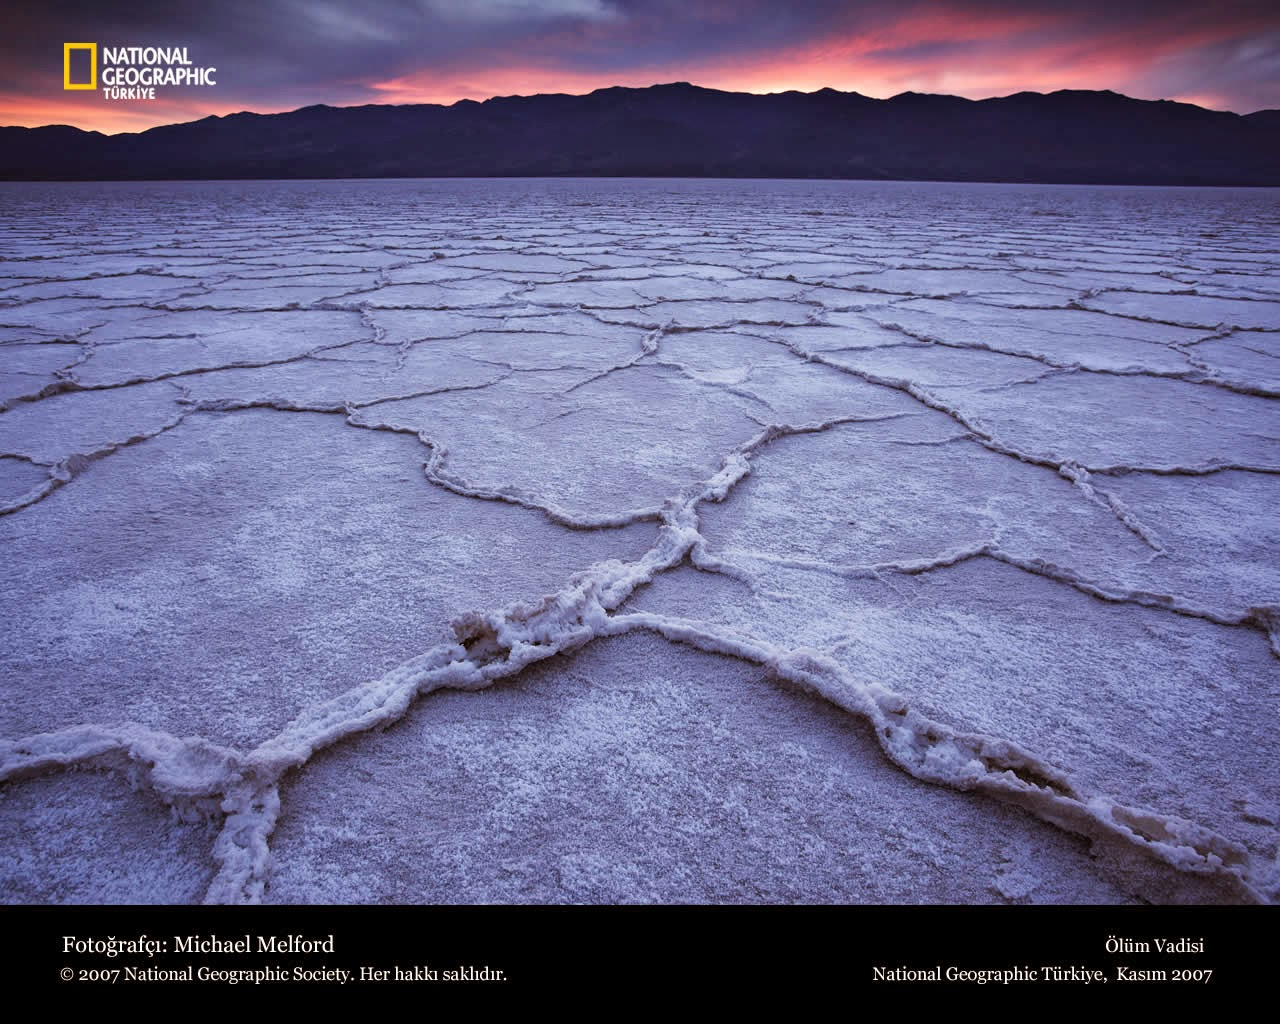 Michael Melford, National Geographic